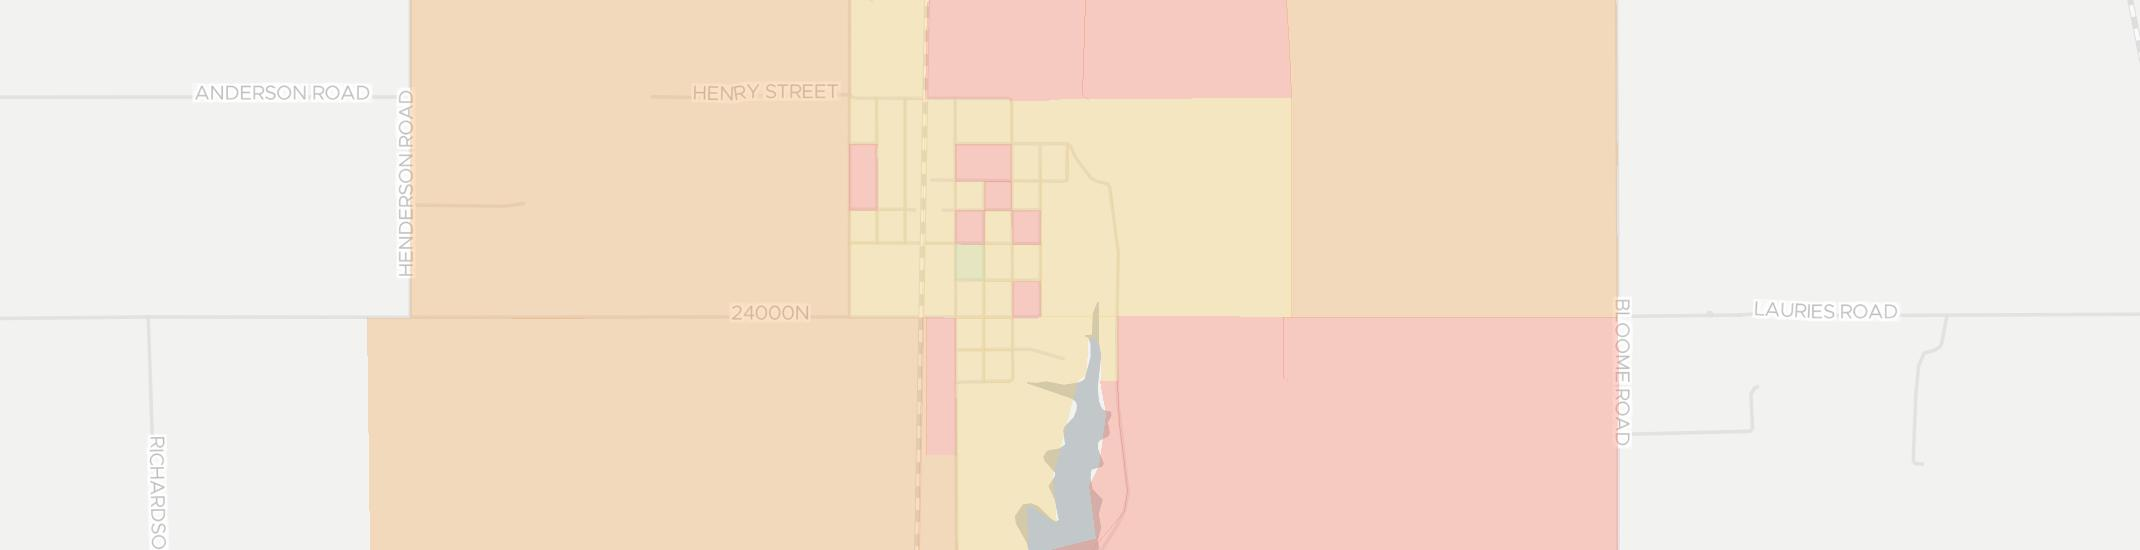 Standard City Internet Competition Map. Click for interactive map.